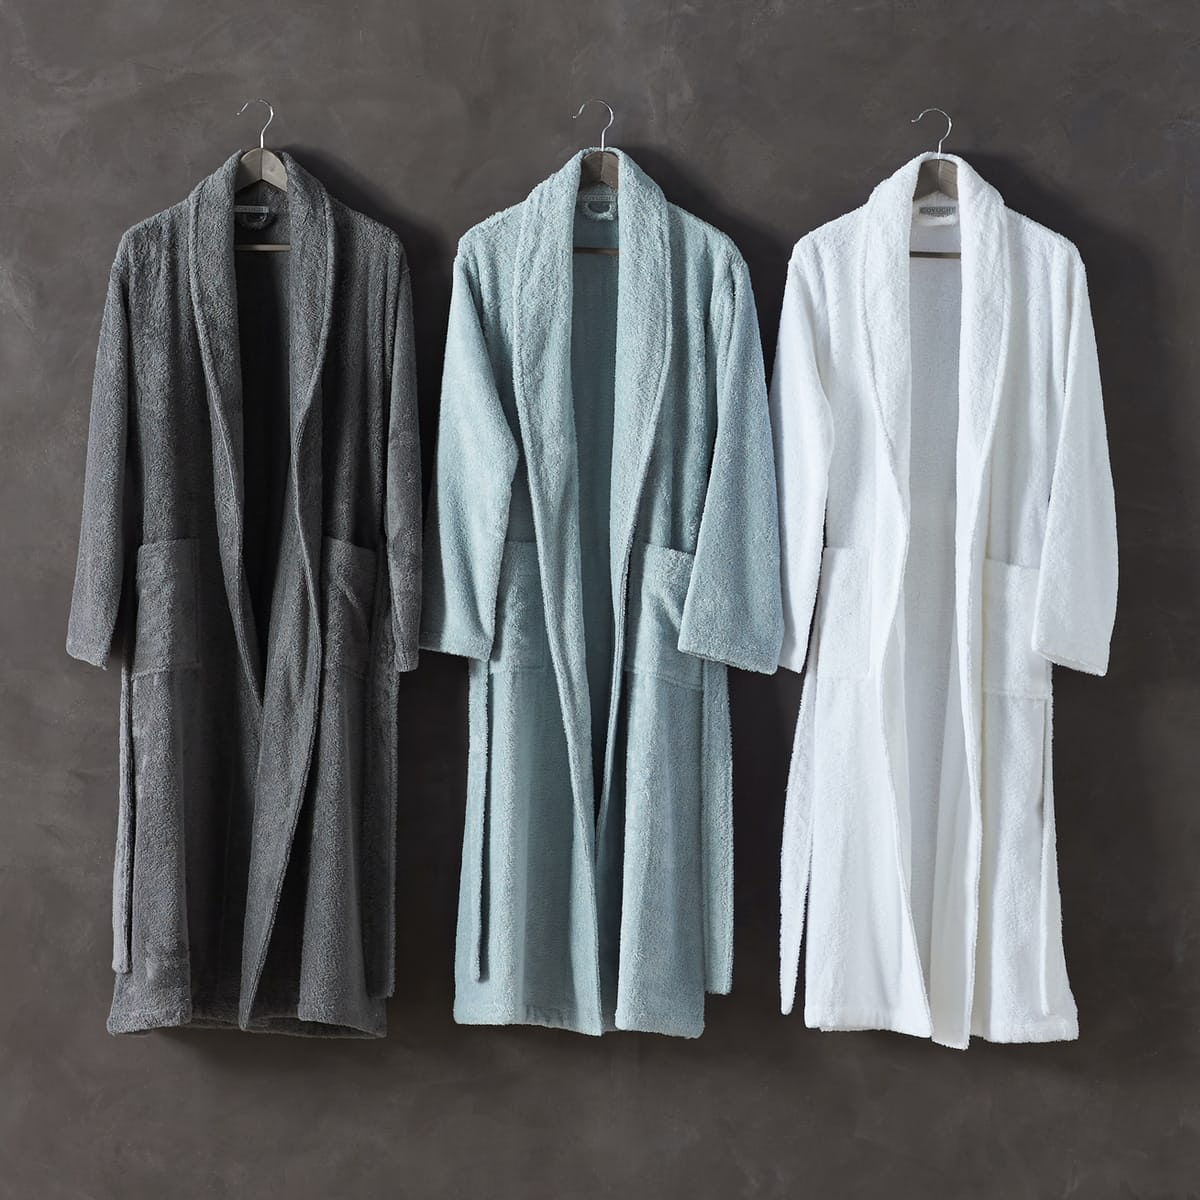 Our top 10 holiday gifts for women in 2020: The beloved Coyuchi Cloud Loom Robes | Small Business Holiday Gift Guide